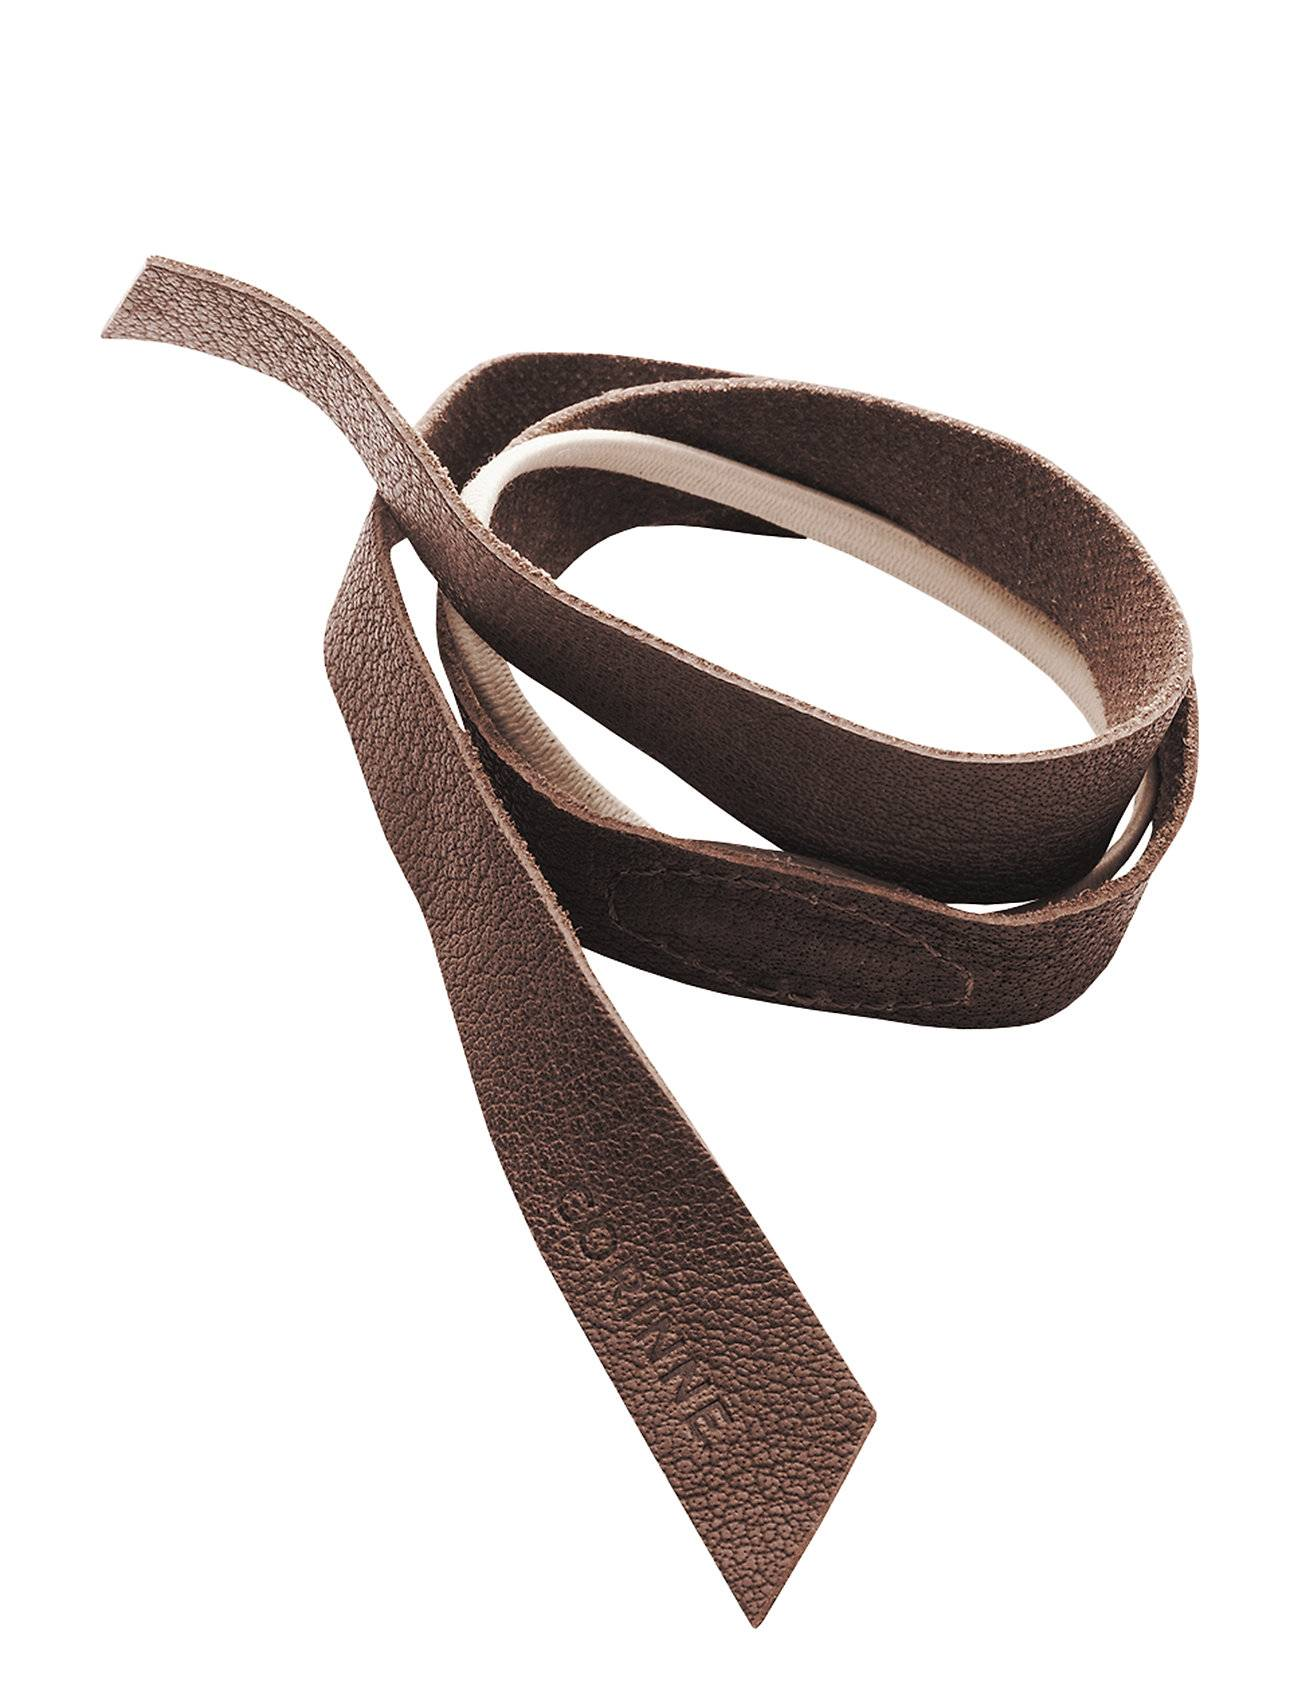 Image of Corinne Leather Band Short Layer Accessories Hair Hair Accessories Ruskea Corinne